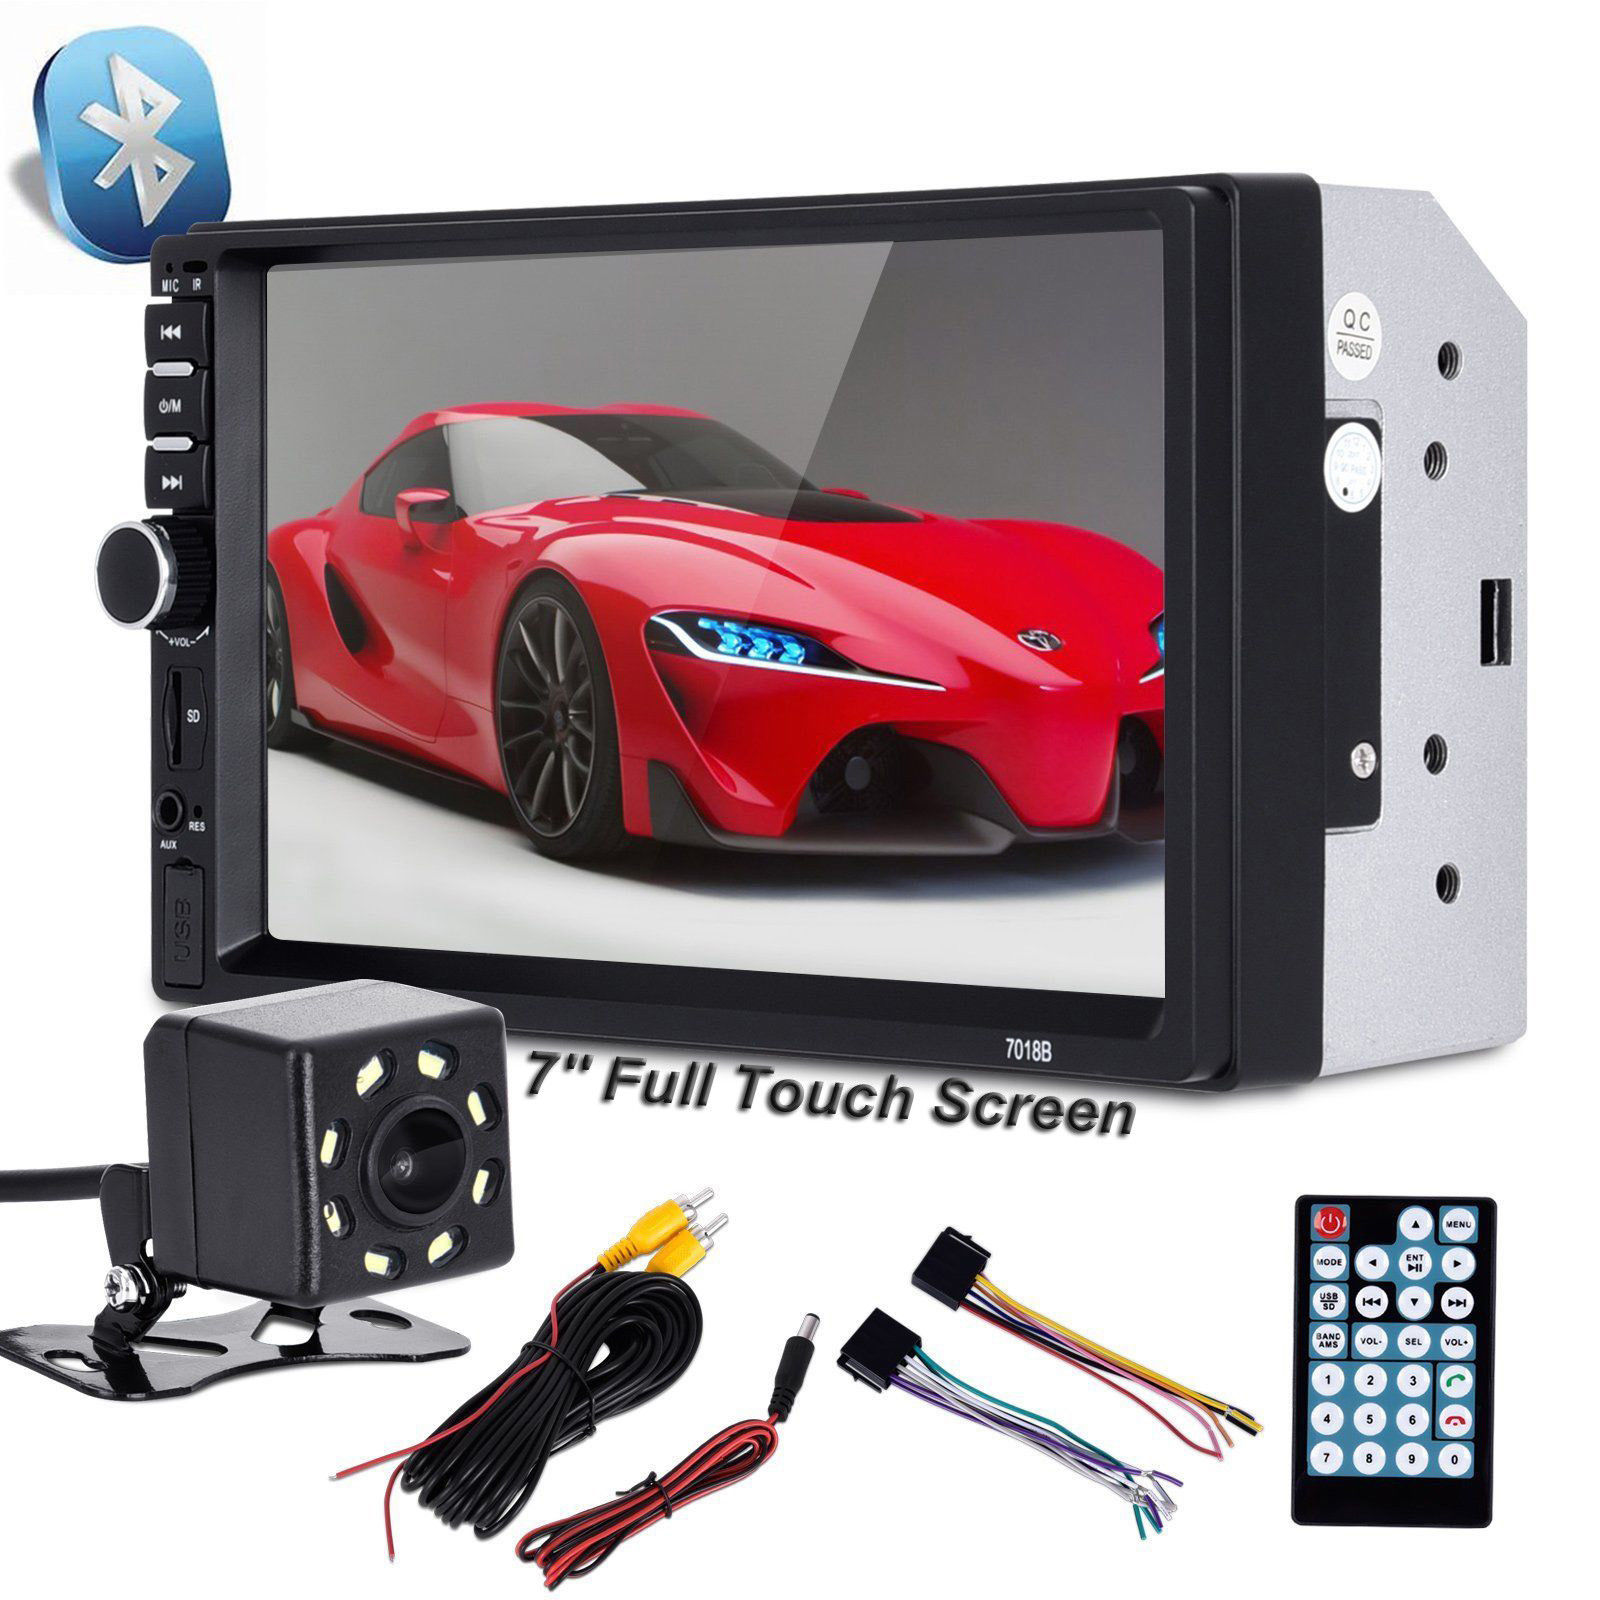 2 din car video player 7 inch touch screen car radio audio stereo2 din car video player 7 inch touch screen car radio audio stereo mp5 player 2din usb fm bluetooth rear view camera walmart com